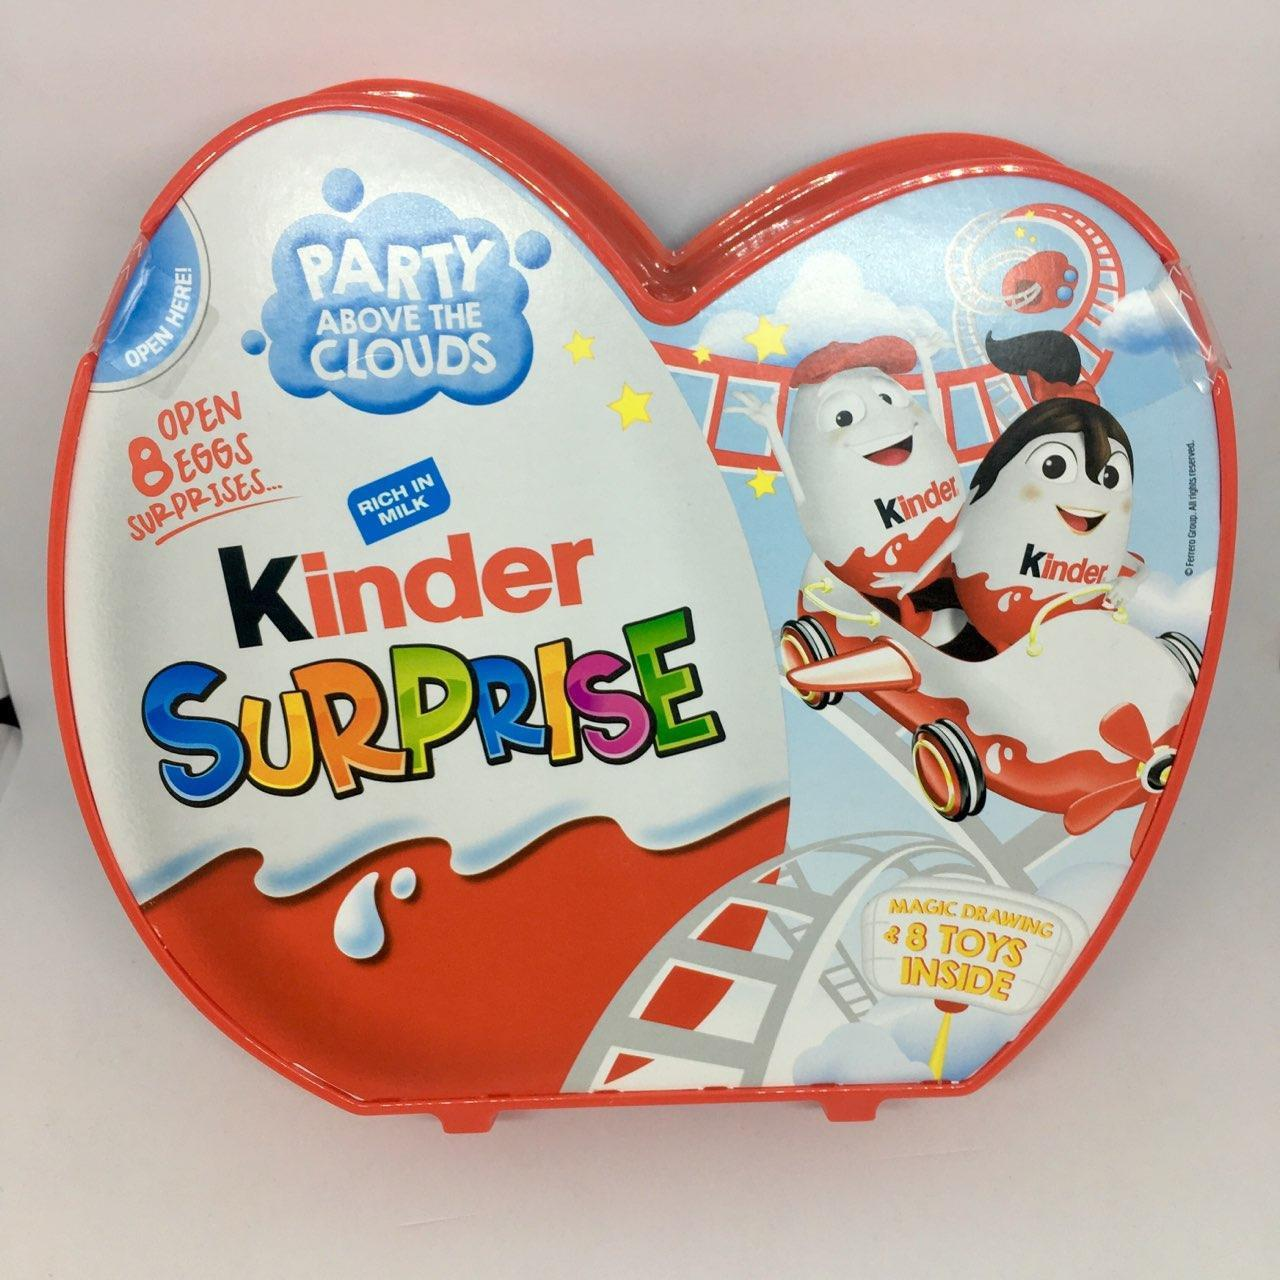 Яйца Kinder Surprise Party Above the clouds